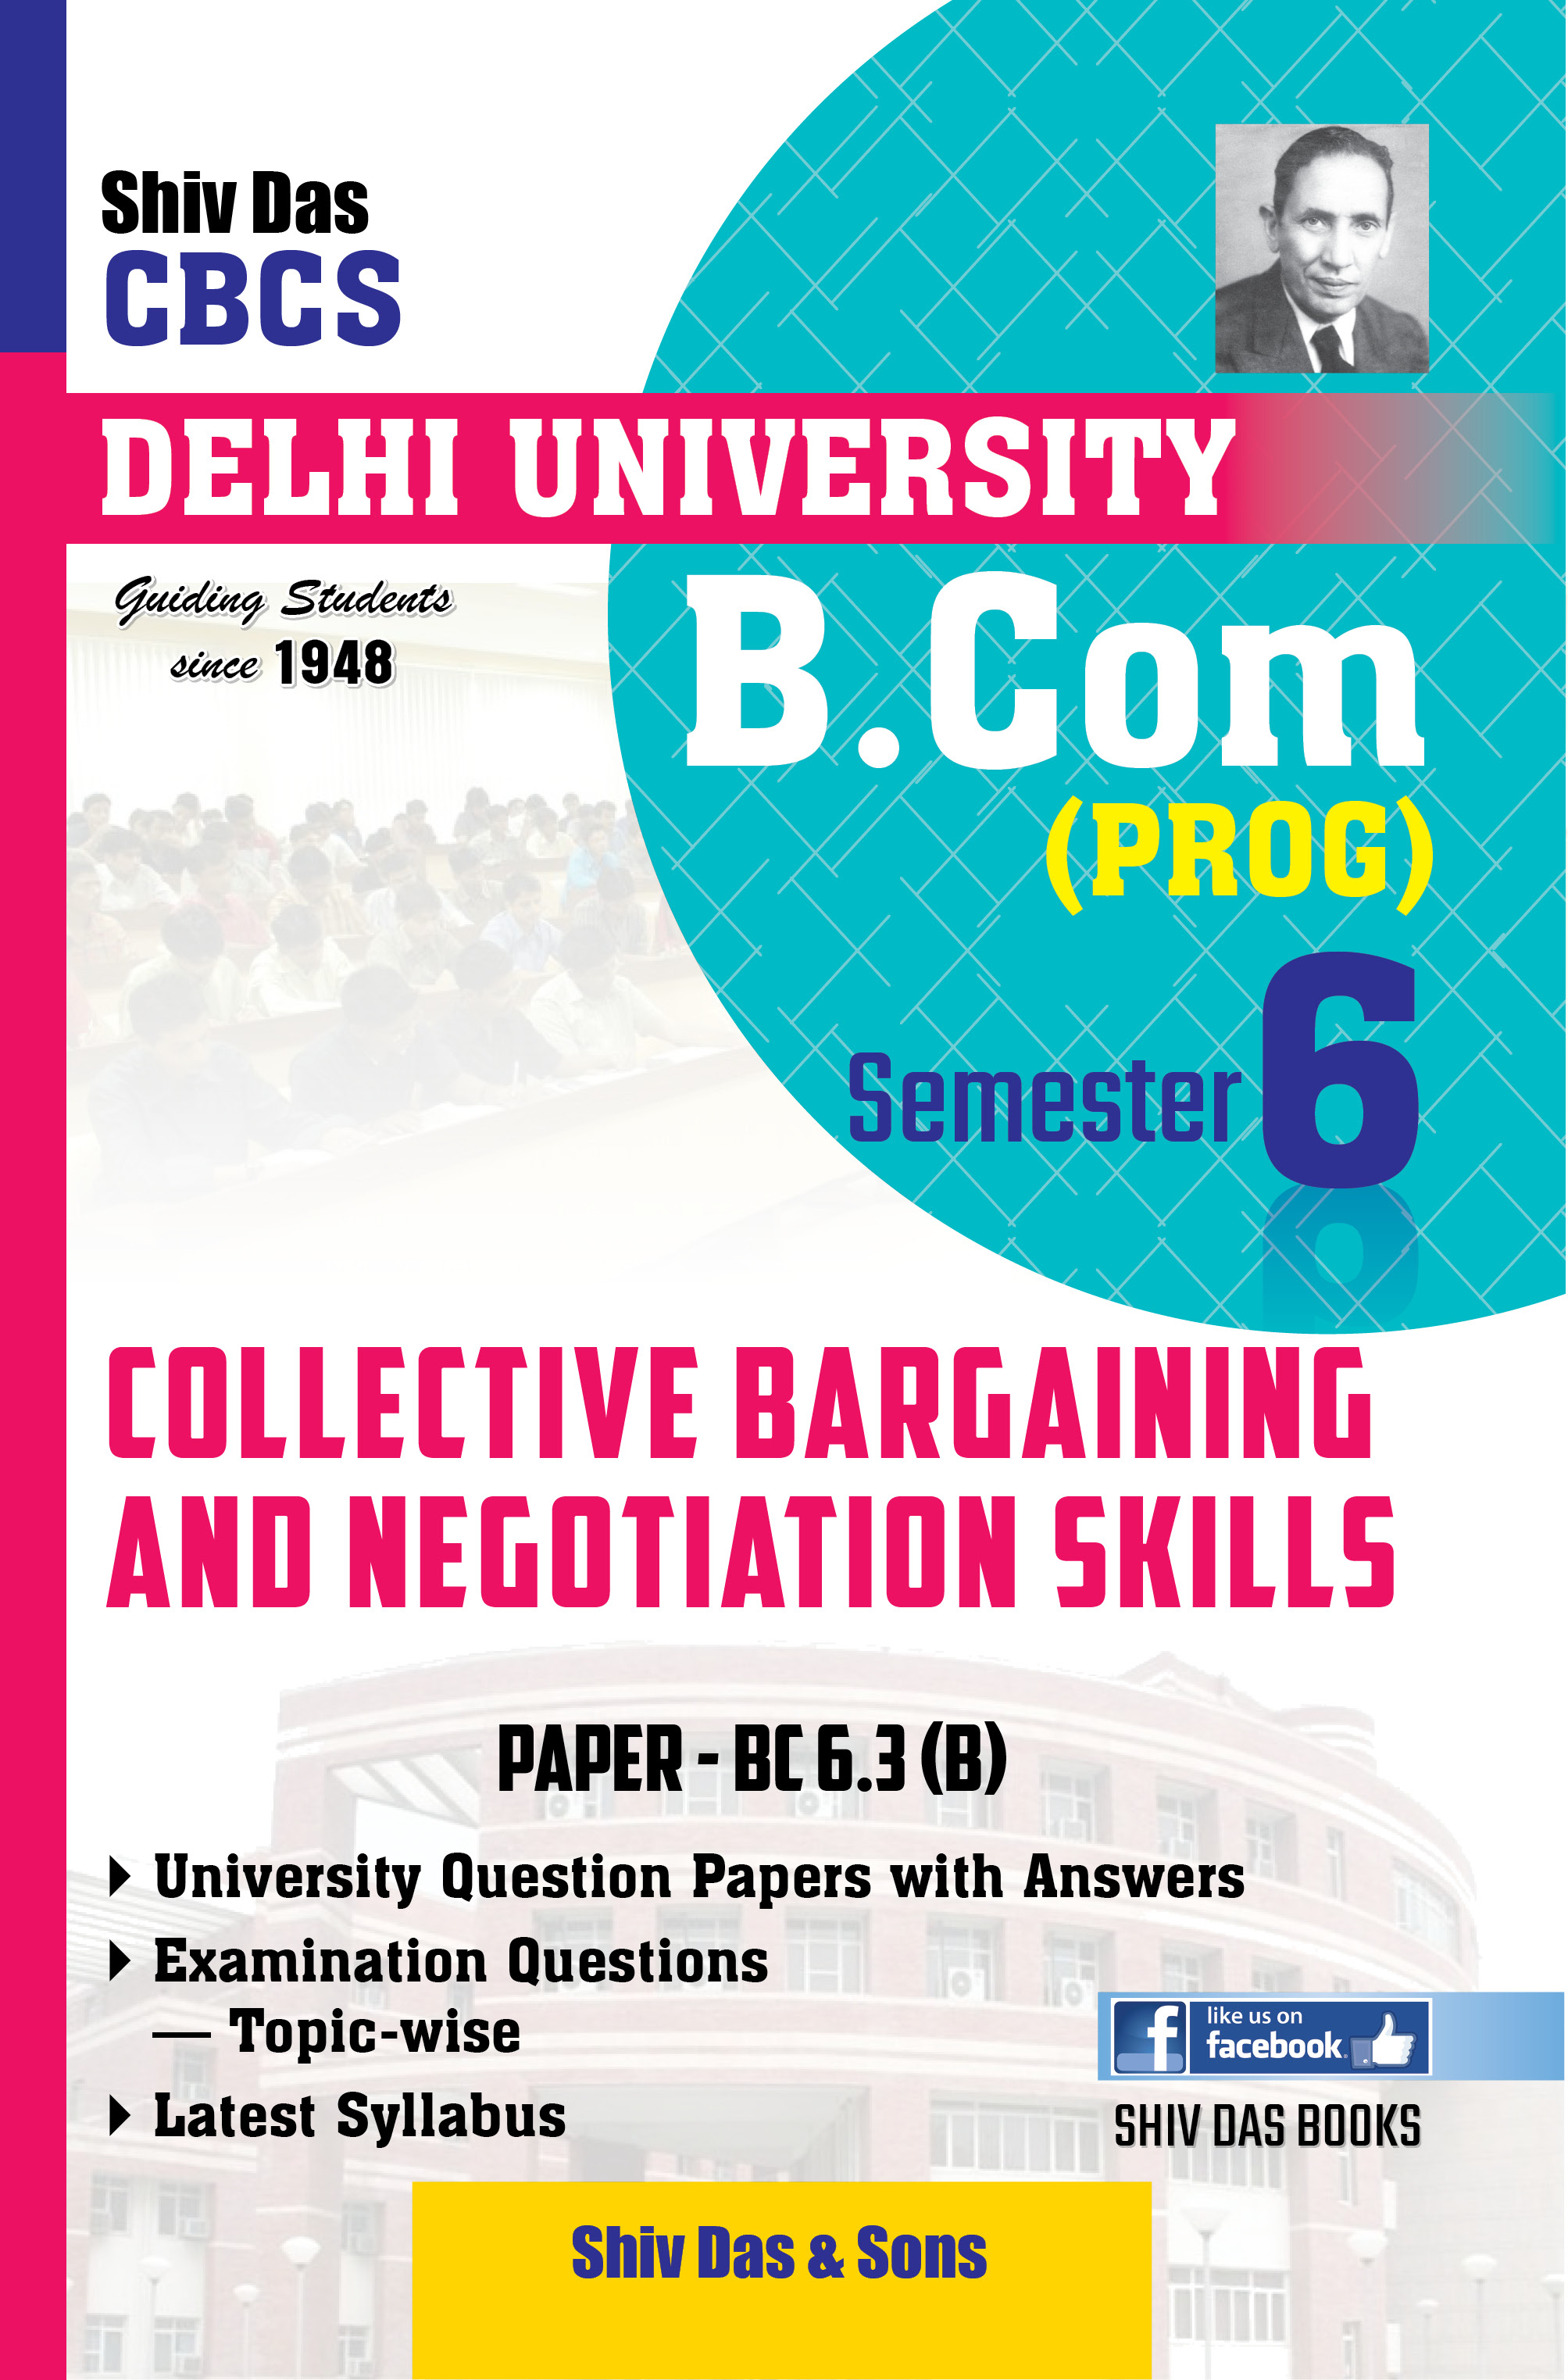 Collective Bargaining and Negotiation Skills for B Com Prog Semester 6